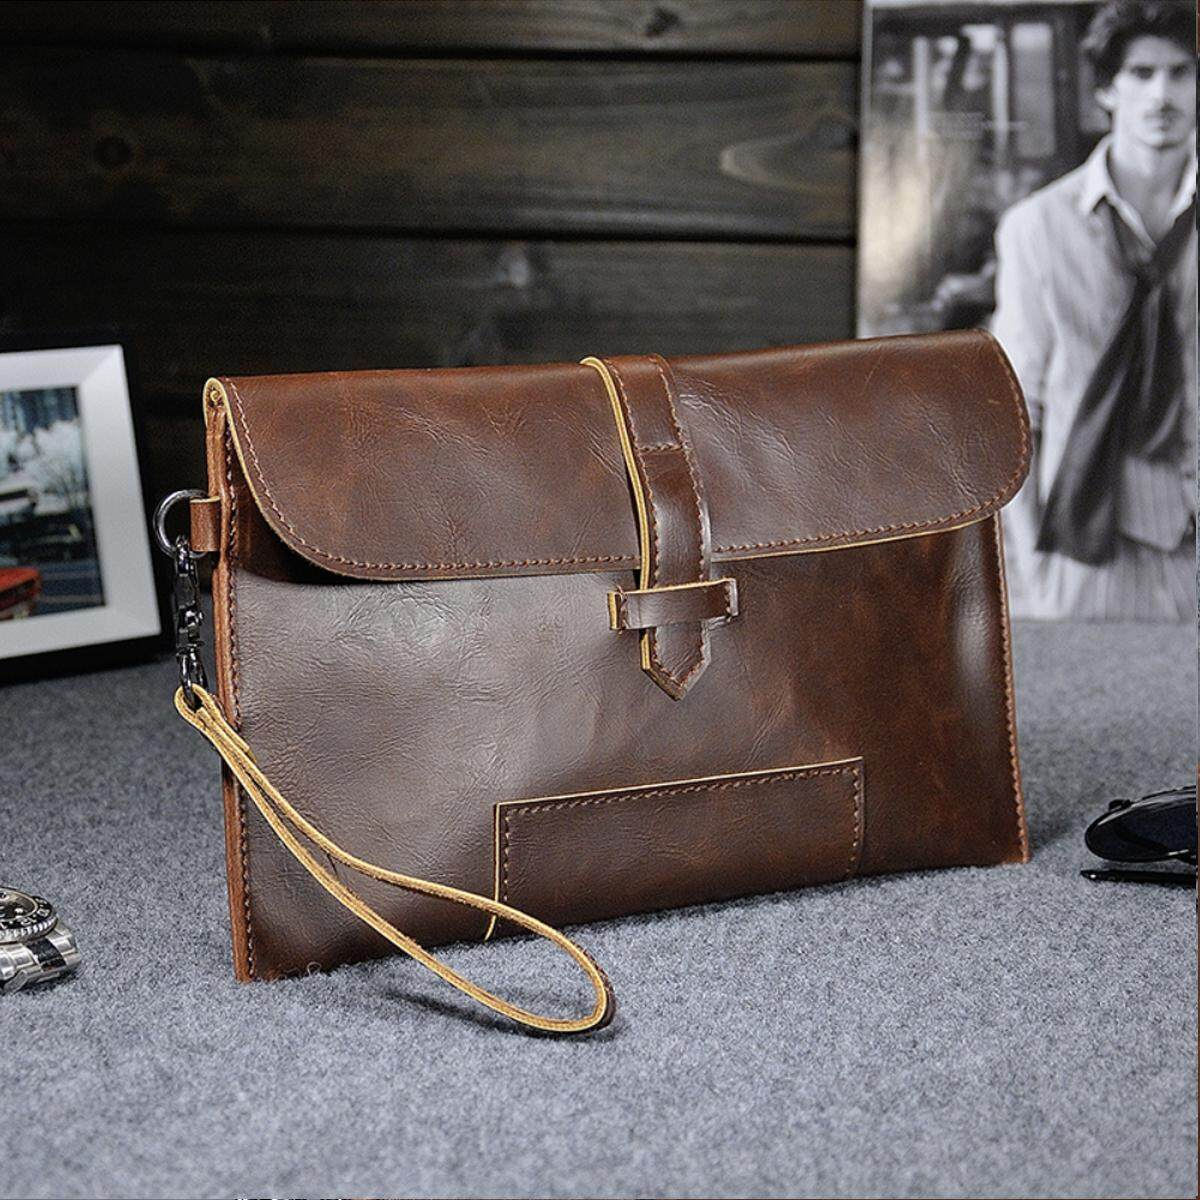 OOTD28 Men's Crazy Rich PU Leather Clutch Bag Messenger Carry Bag, Dark Brown